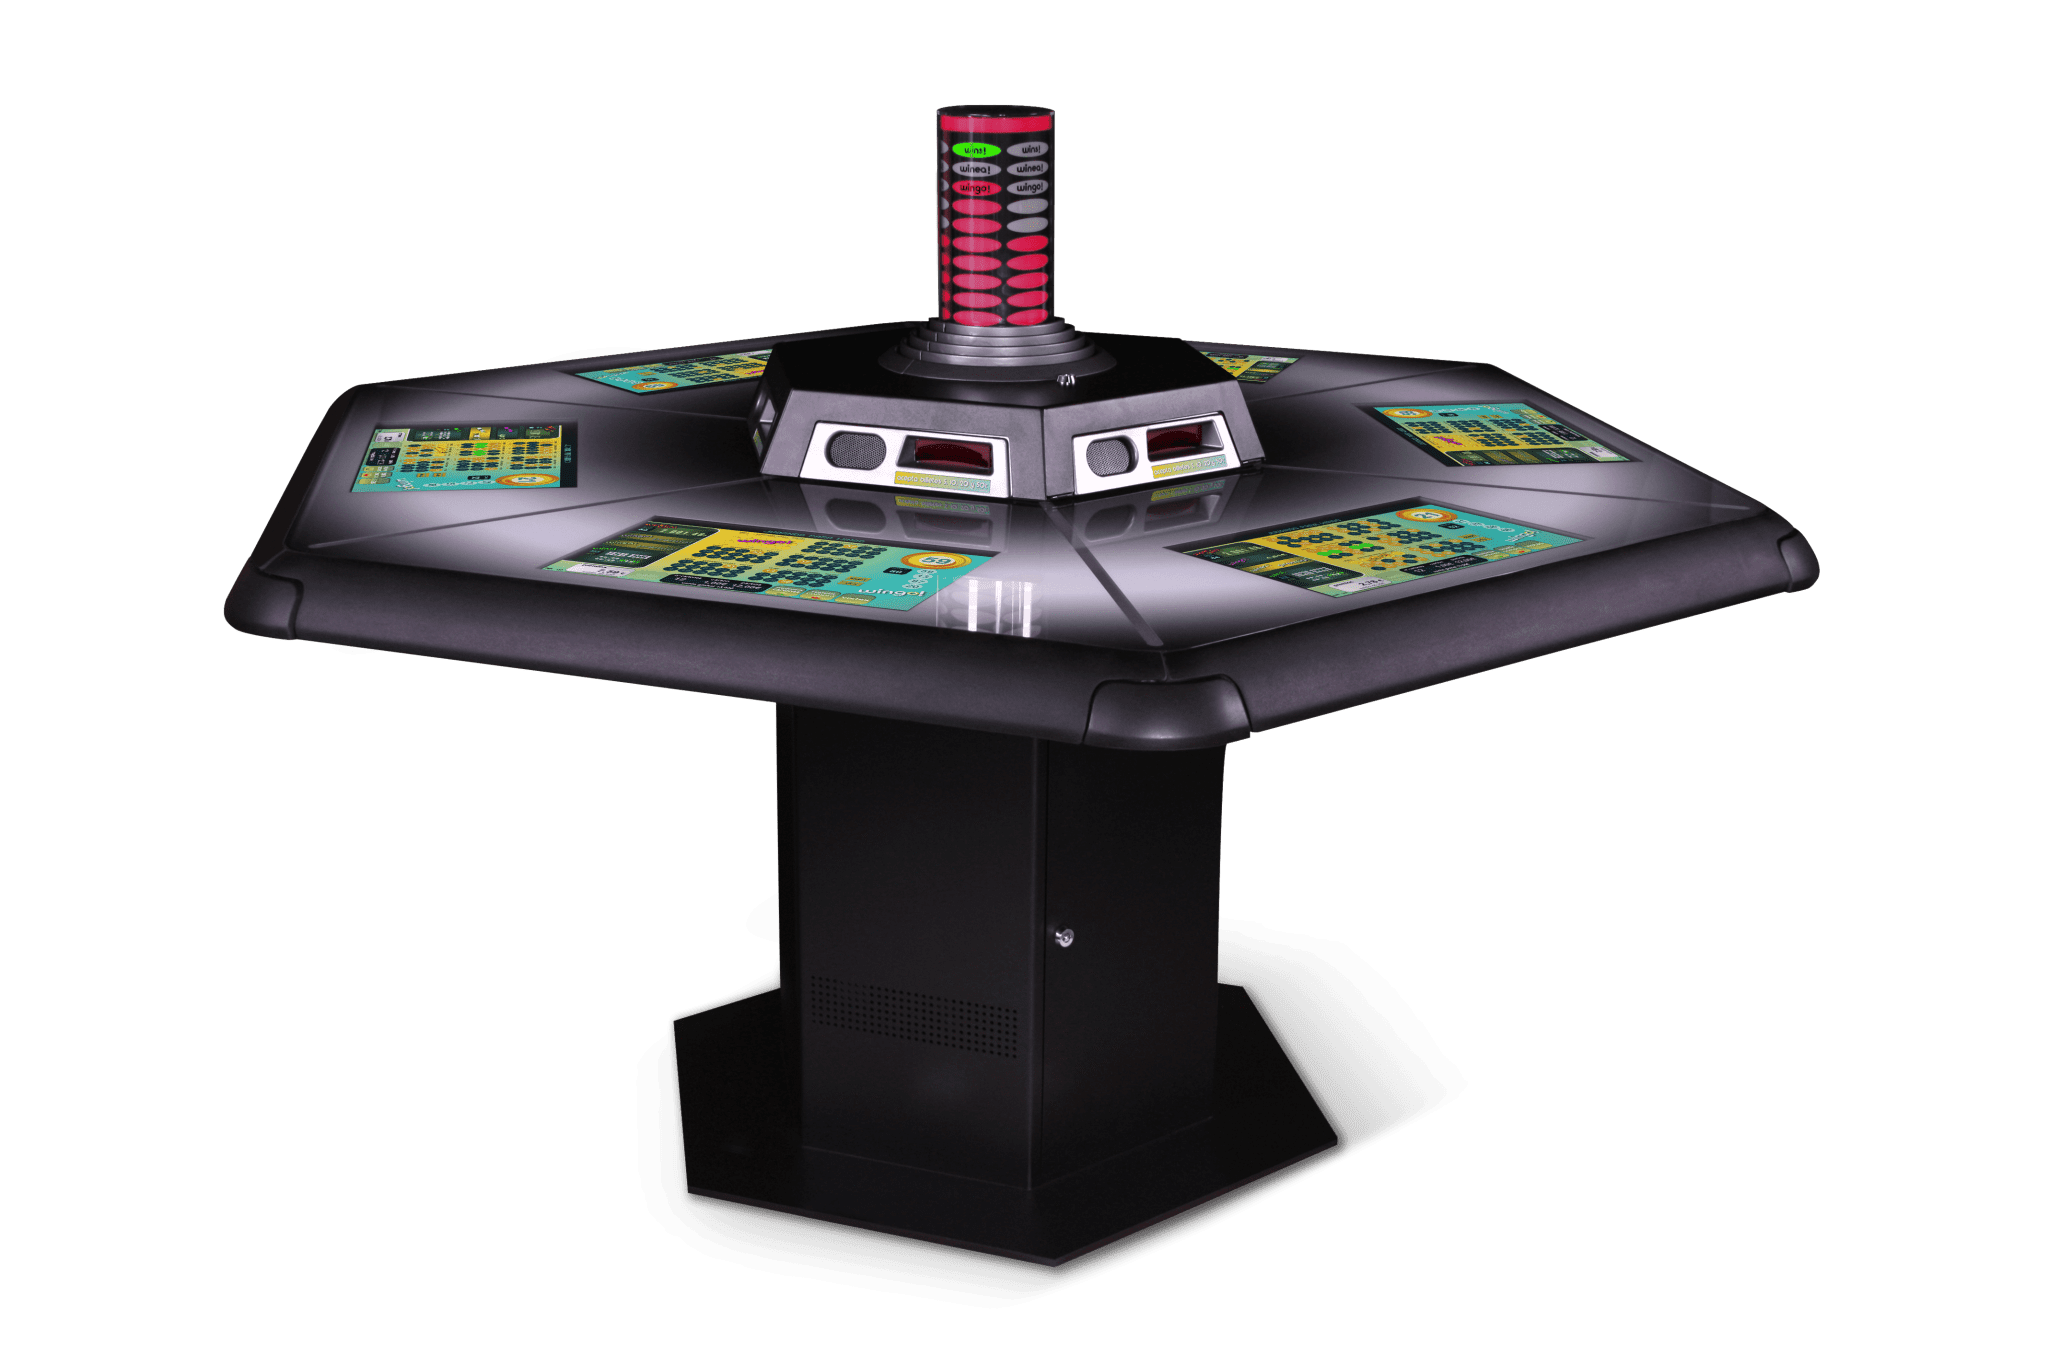 A touch screen Mesa Hex Wingo 6P gaming kiosk